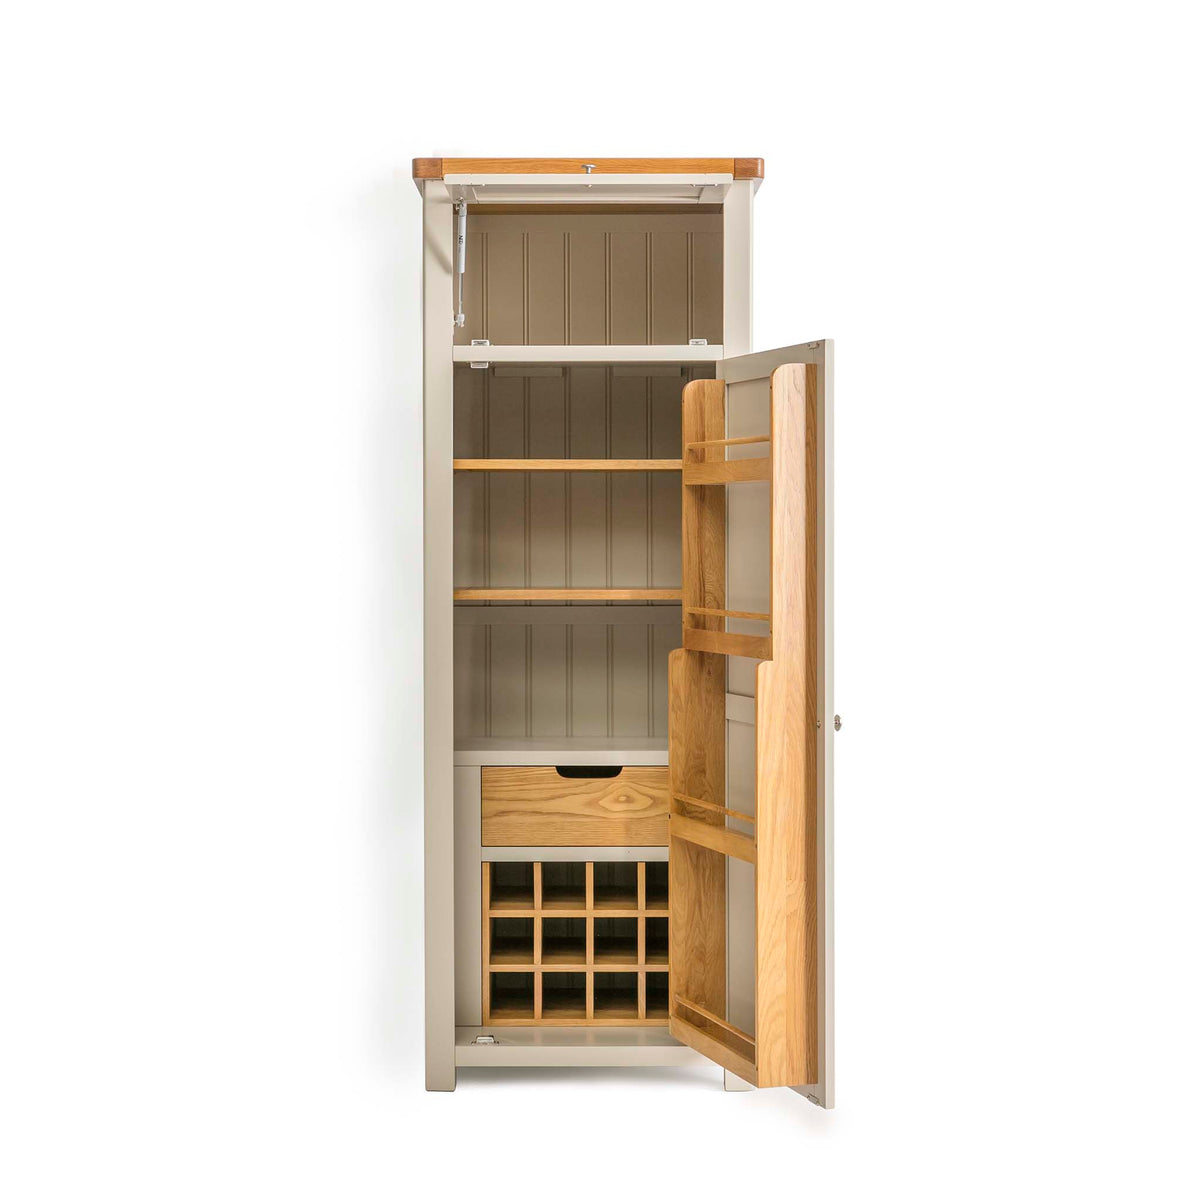 Padstow Stone Grey Small Larder Unit by Roseland Furniture